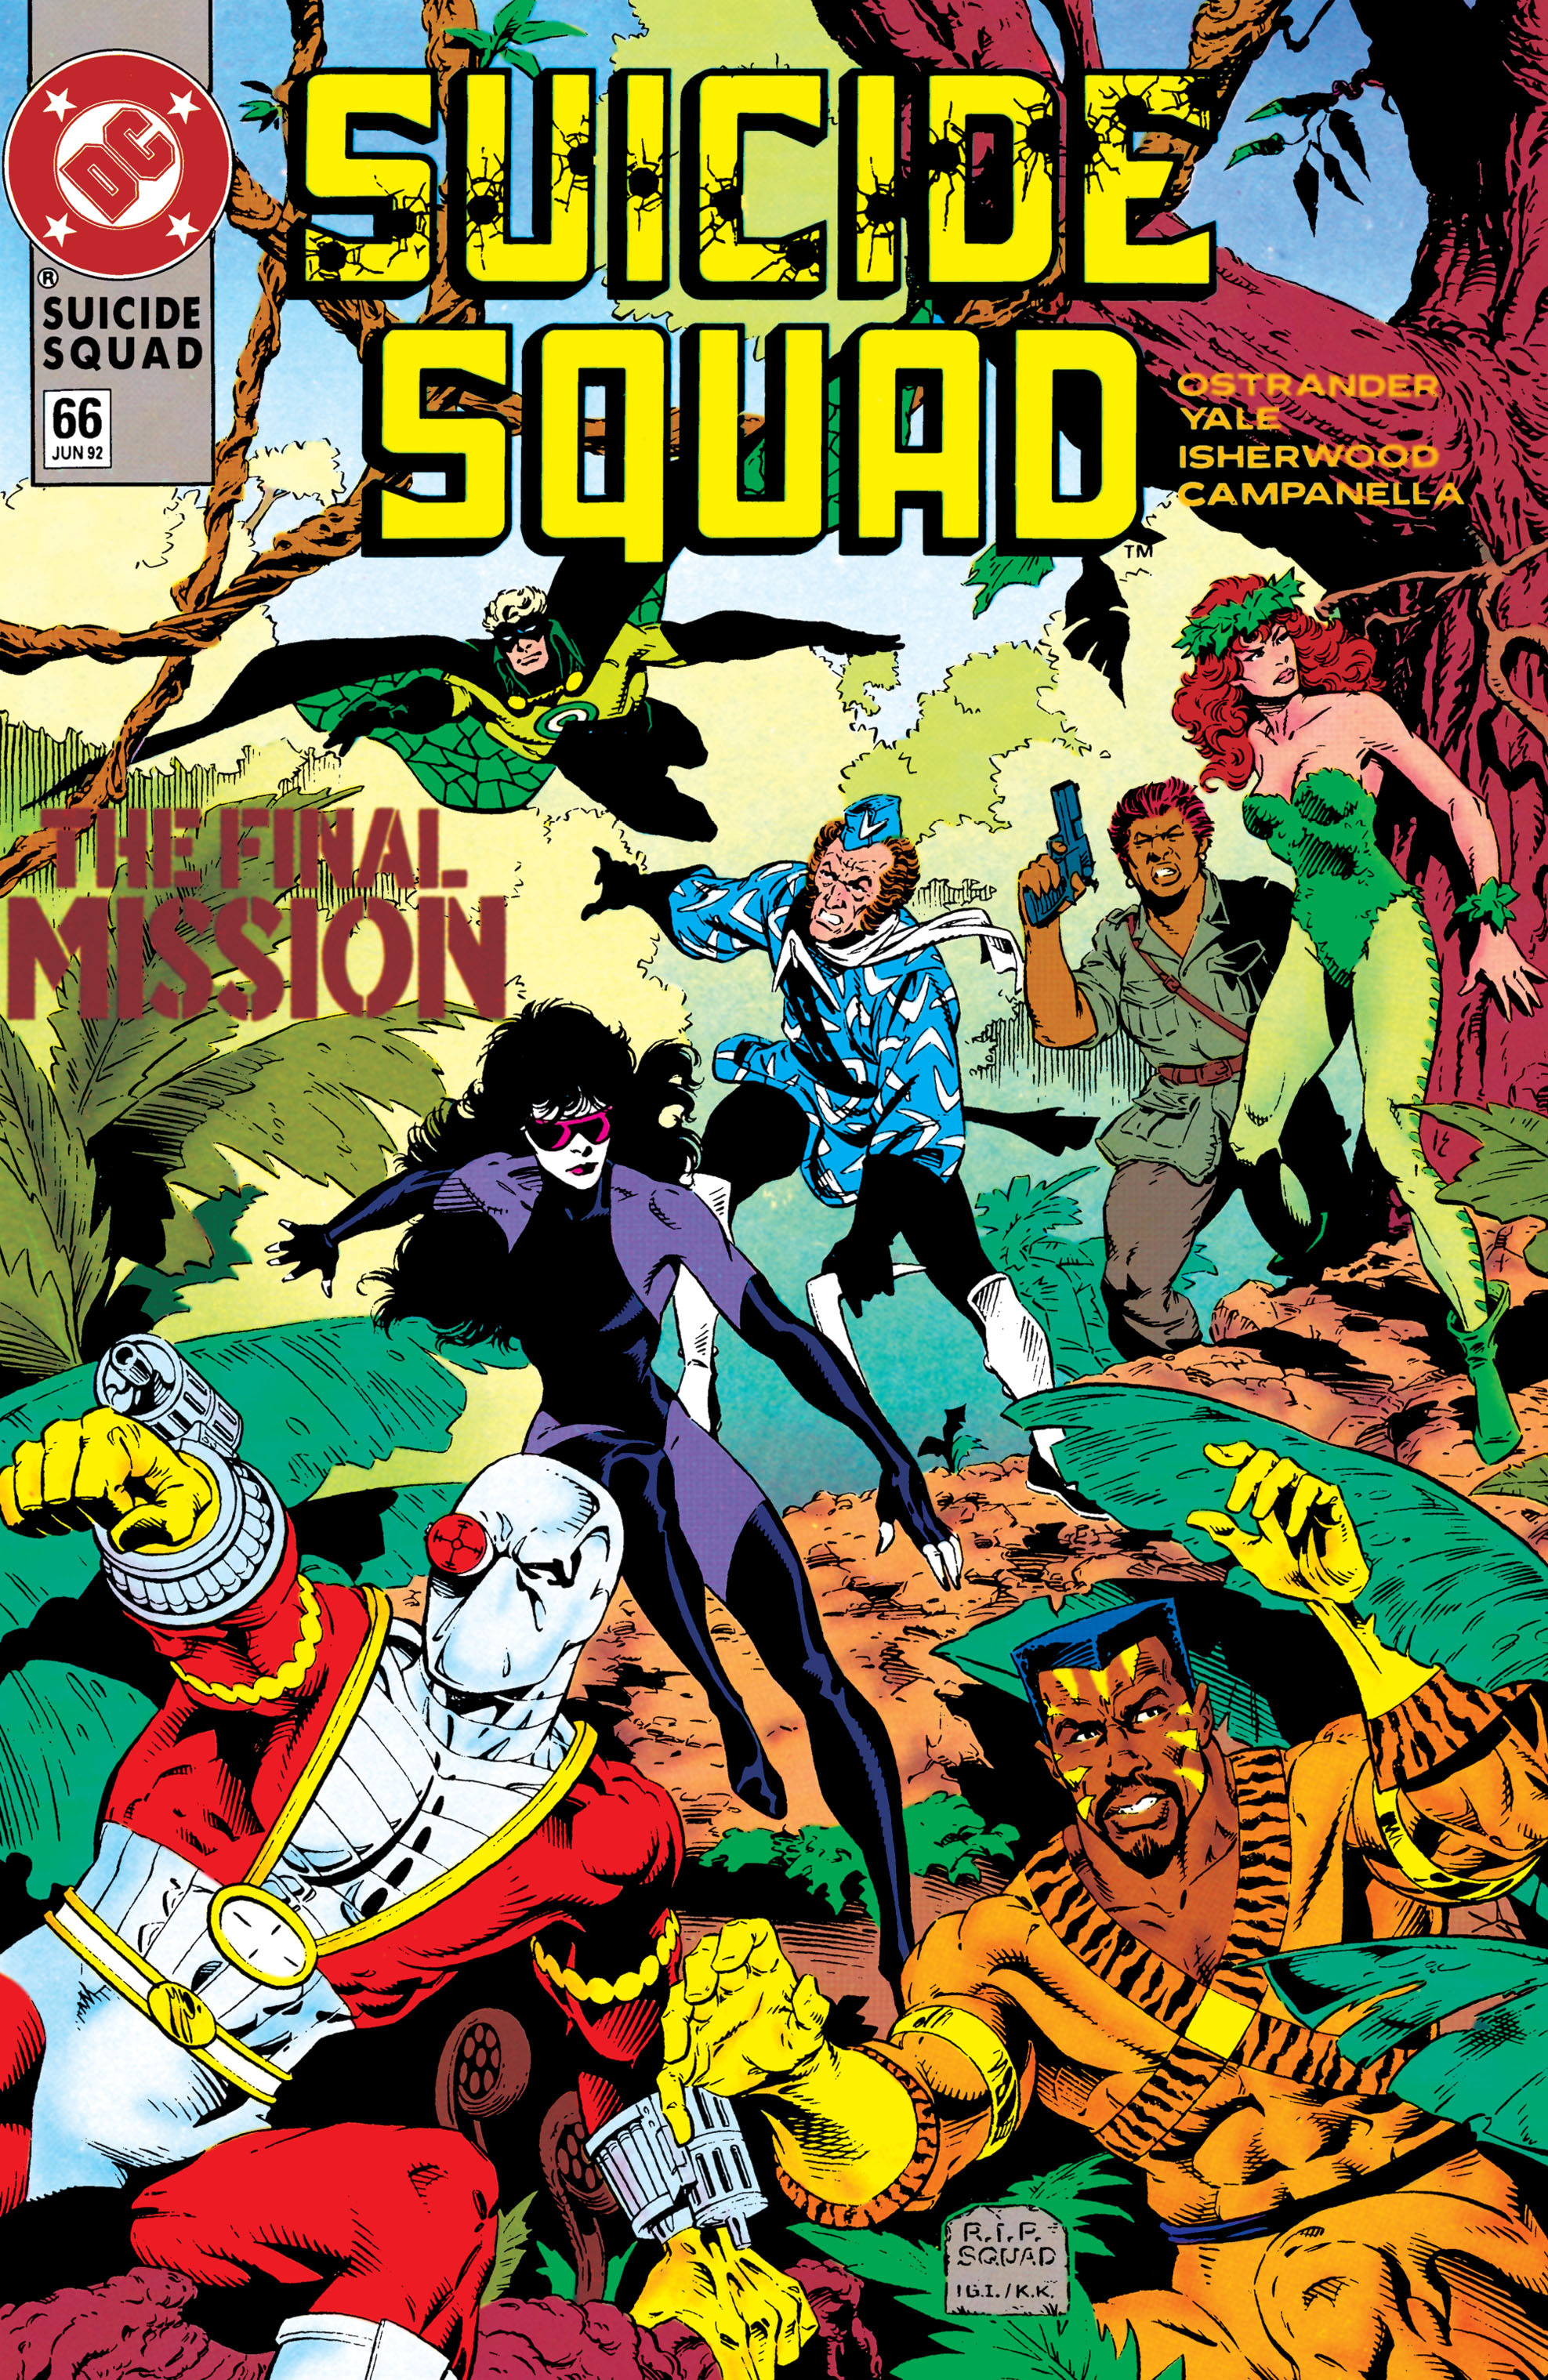 Read online Suicide Squad (1987) comic -  Issue #66 - 1